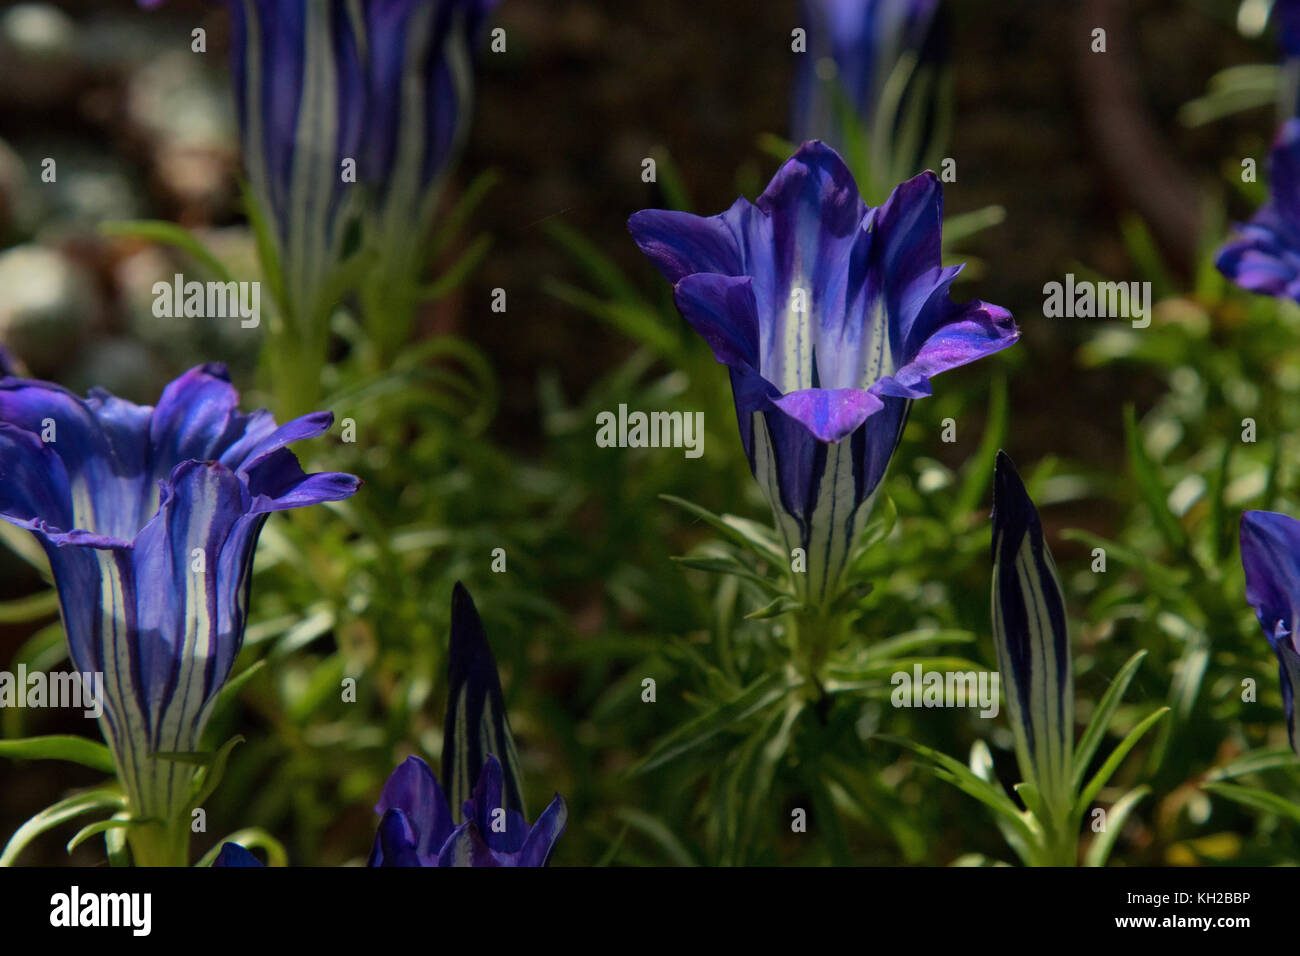 Gentiana blue silk flowers stock photo 165395322 alamy gentiana blue silk flowers izmirmasajfo